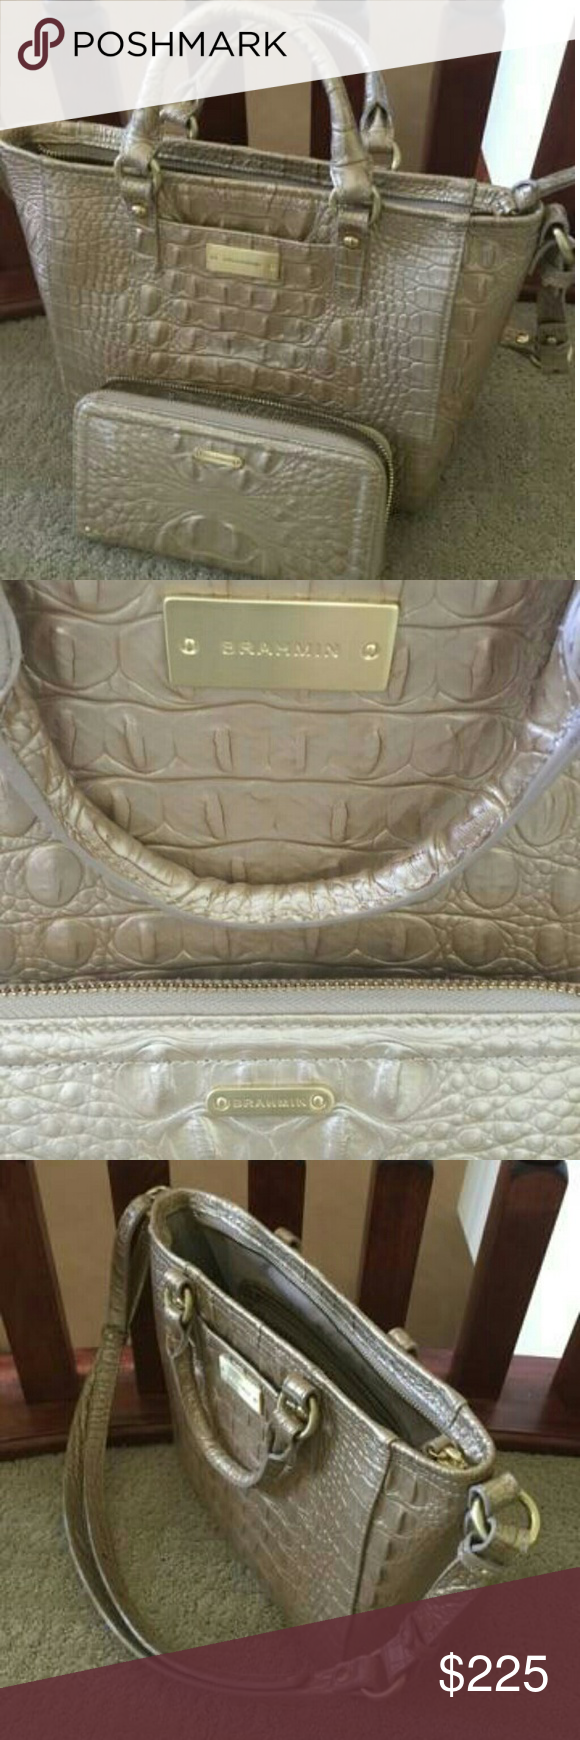 Genuine Brahmin Bag And Wallet Gorgeous Champagne Colored Tote Only Used For A Month Made From Real Crocodile Leather With